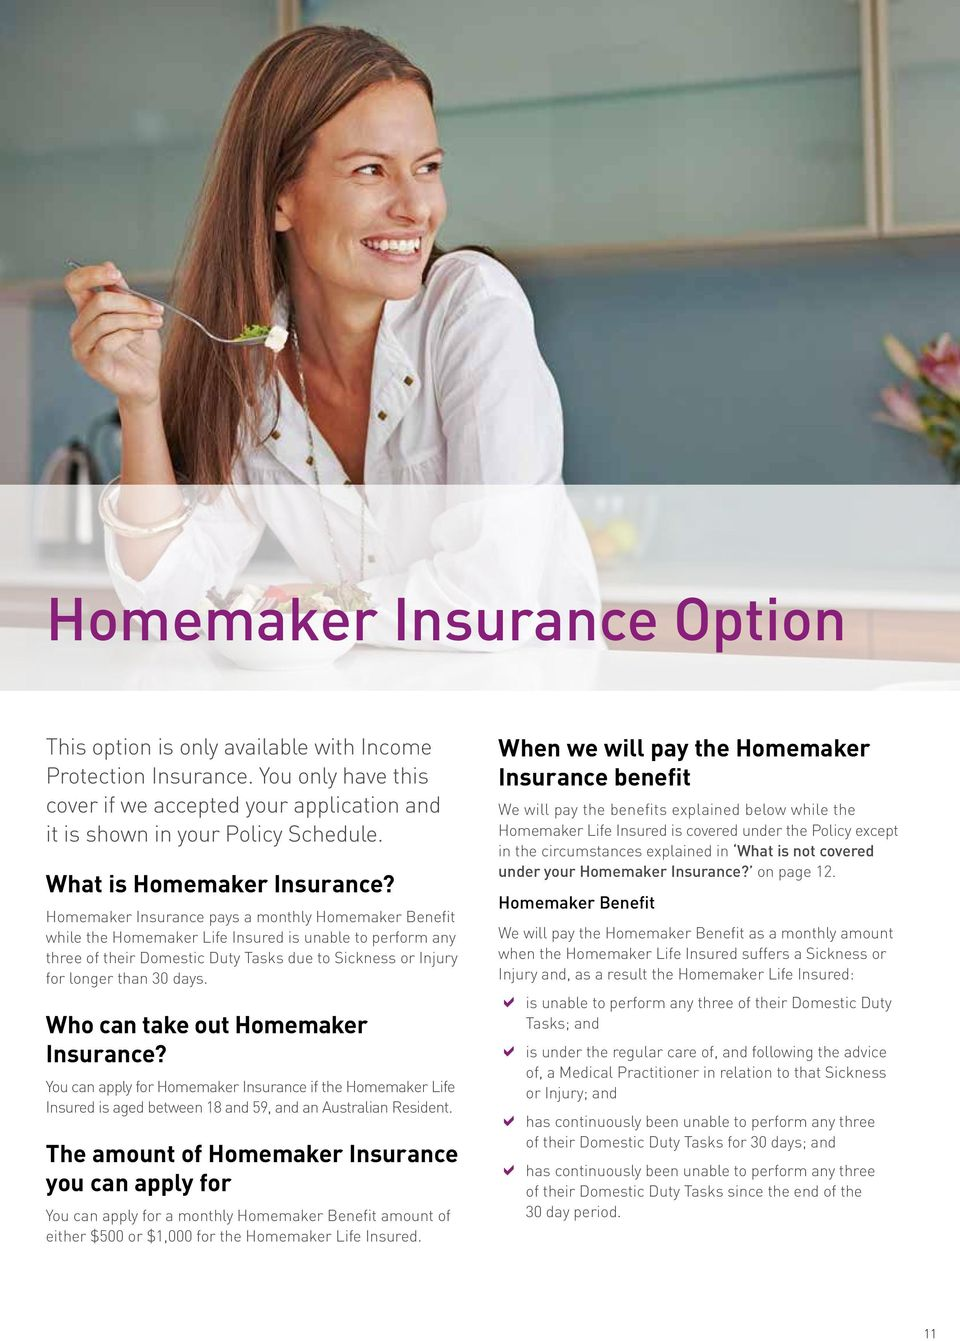 Homemaker Insurance pays a monthly Homemaker Benefit while the Homemaker Life Insured is unable to perform any three of their Domestic Duty Tasks due to Sickness or Injury for longer than 30 days.